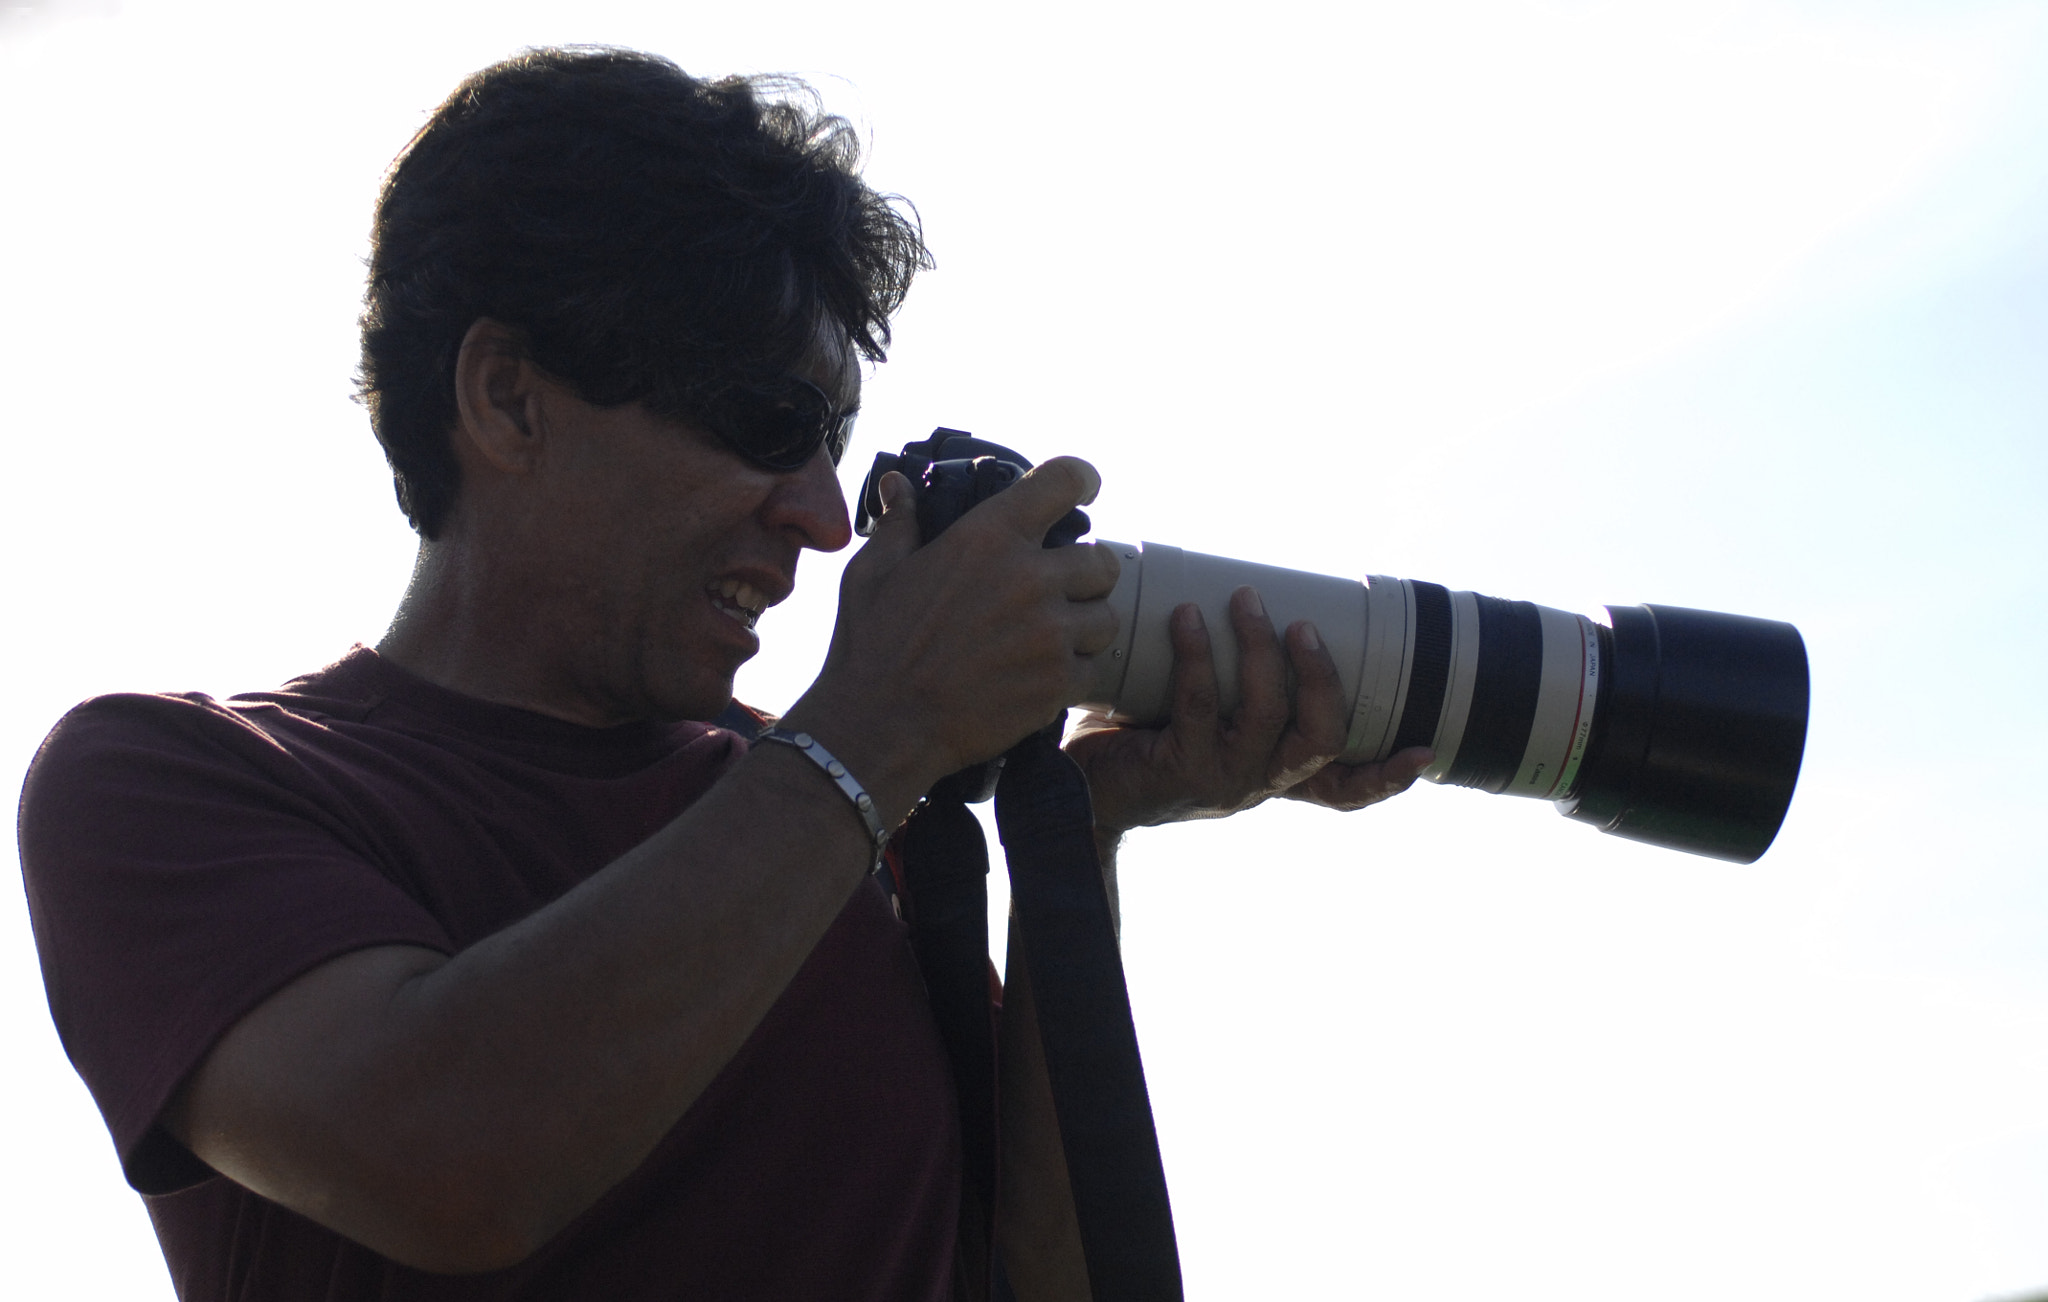 Photograph photographer in action by Josefina Macchia on 500px